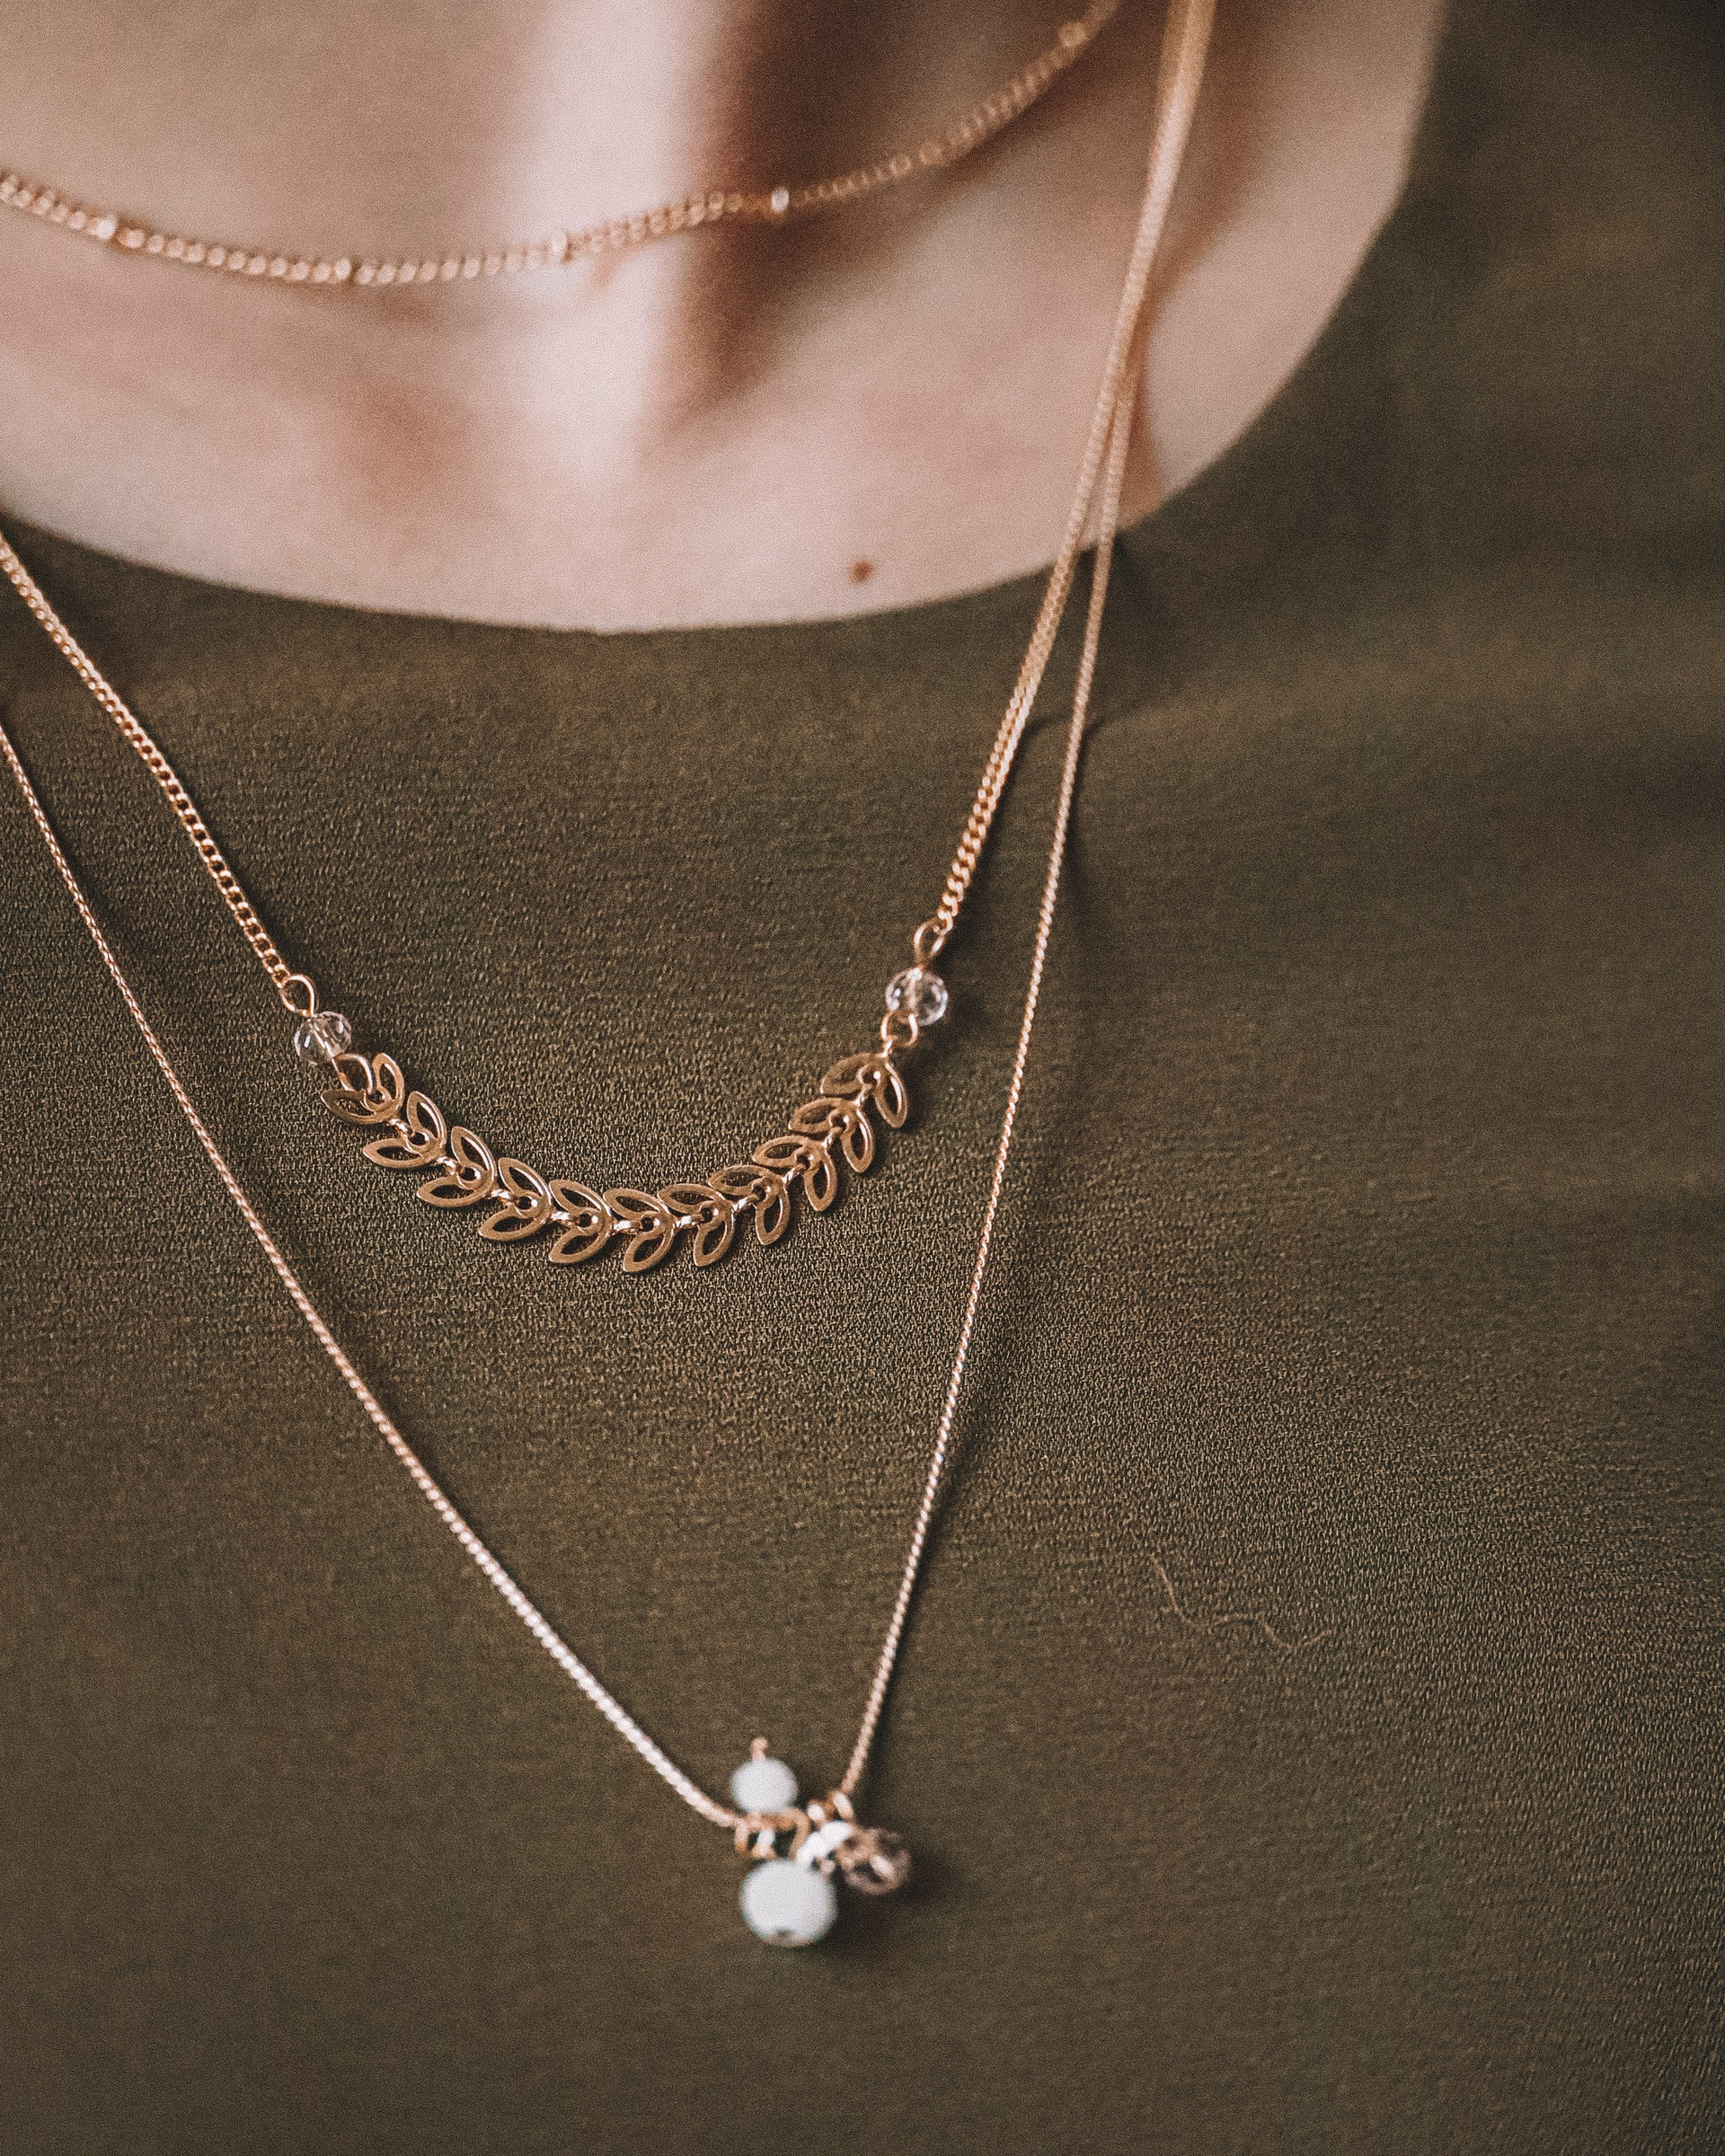 A Guide on Choosing the Right Kinds of Jewelry Findings